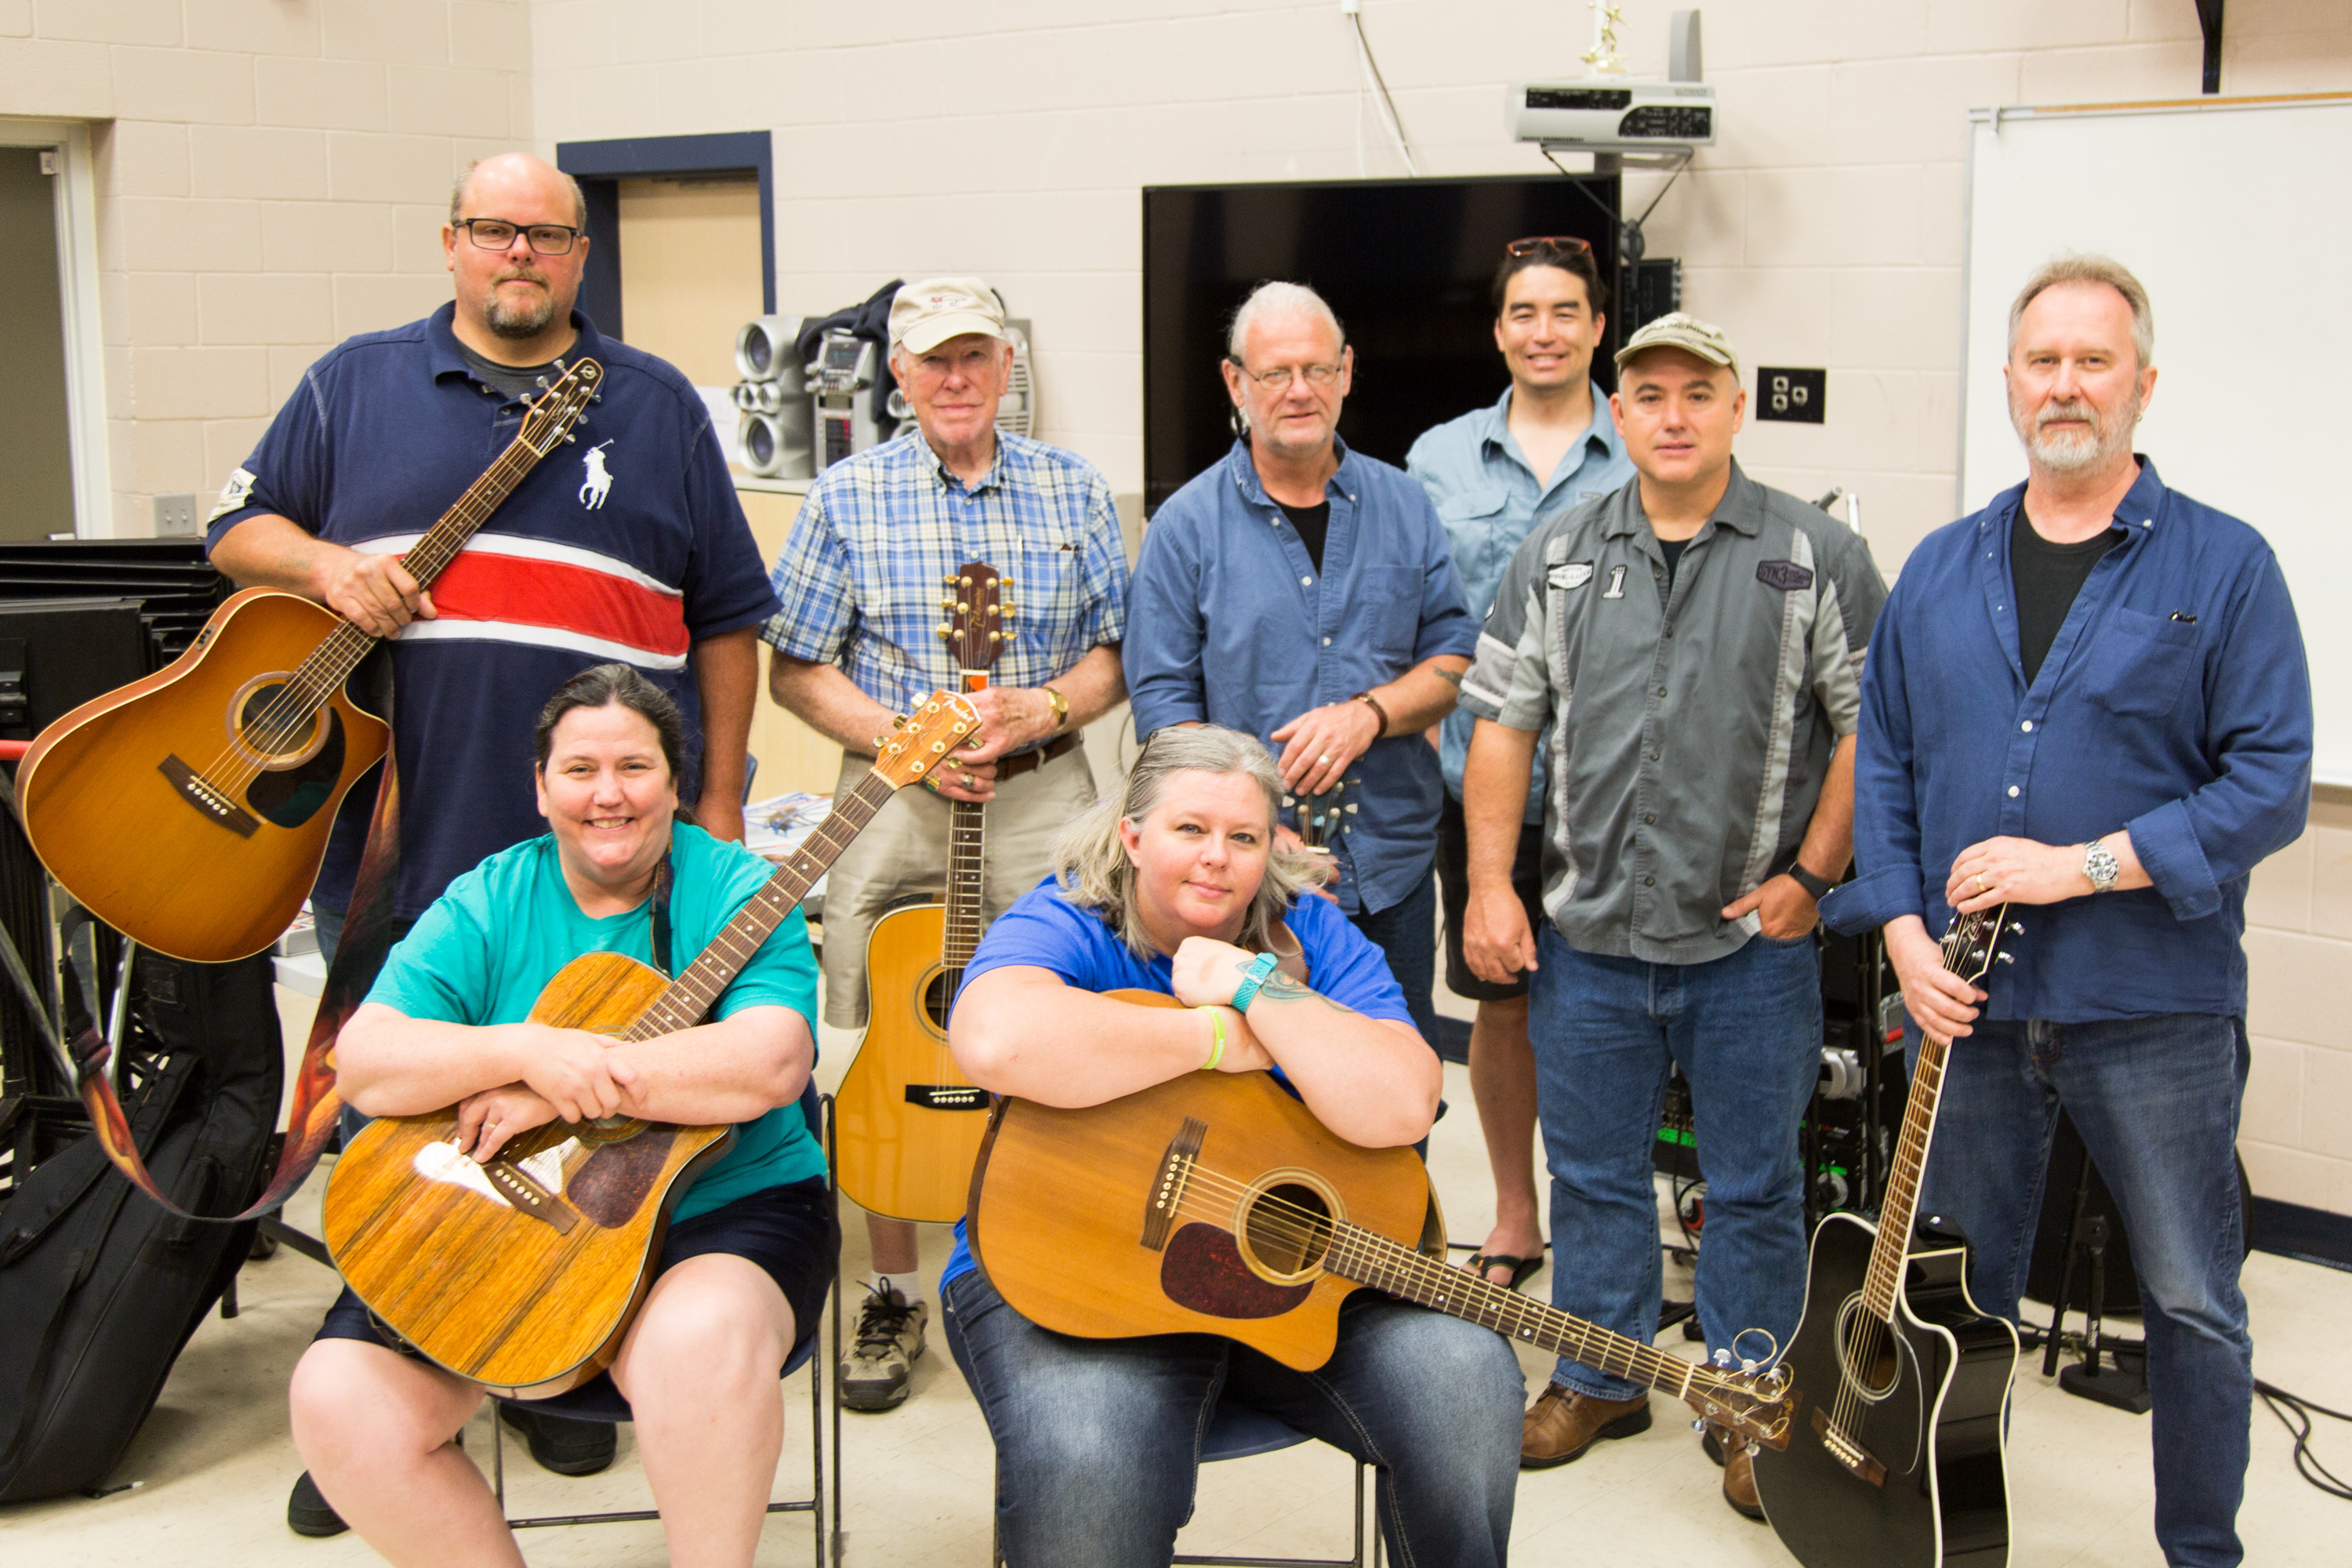 Group photograph of the 2019 N.C. Veterans Songwriting Workshop